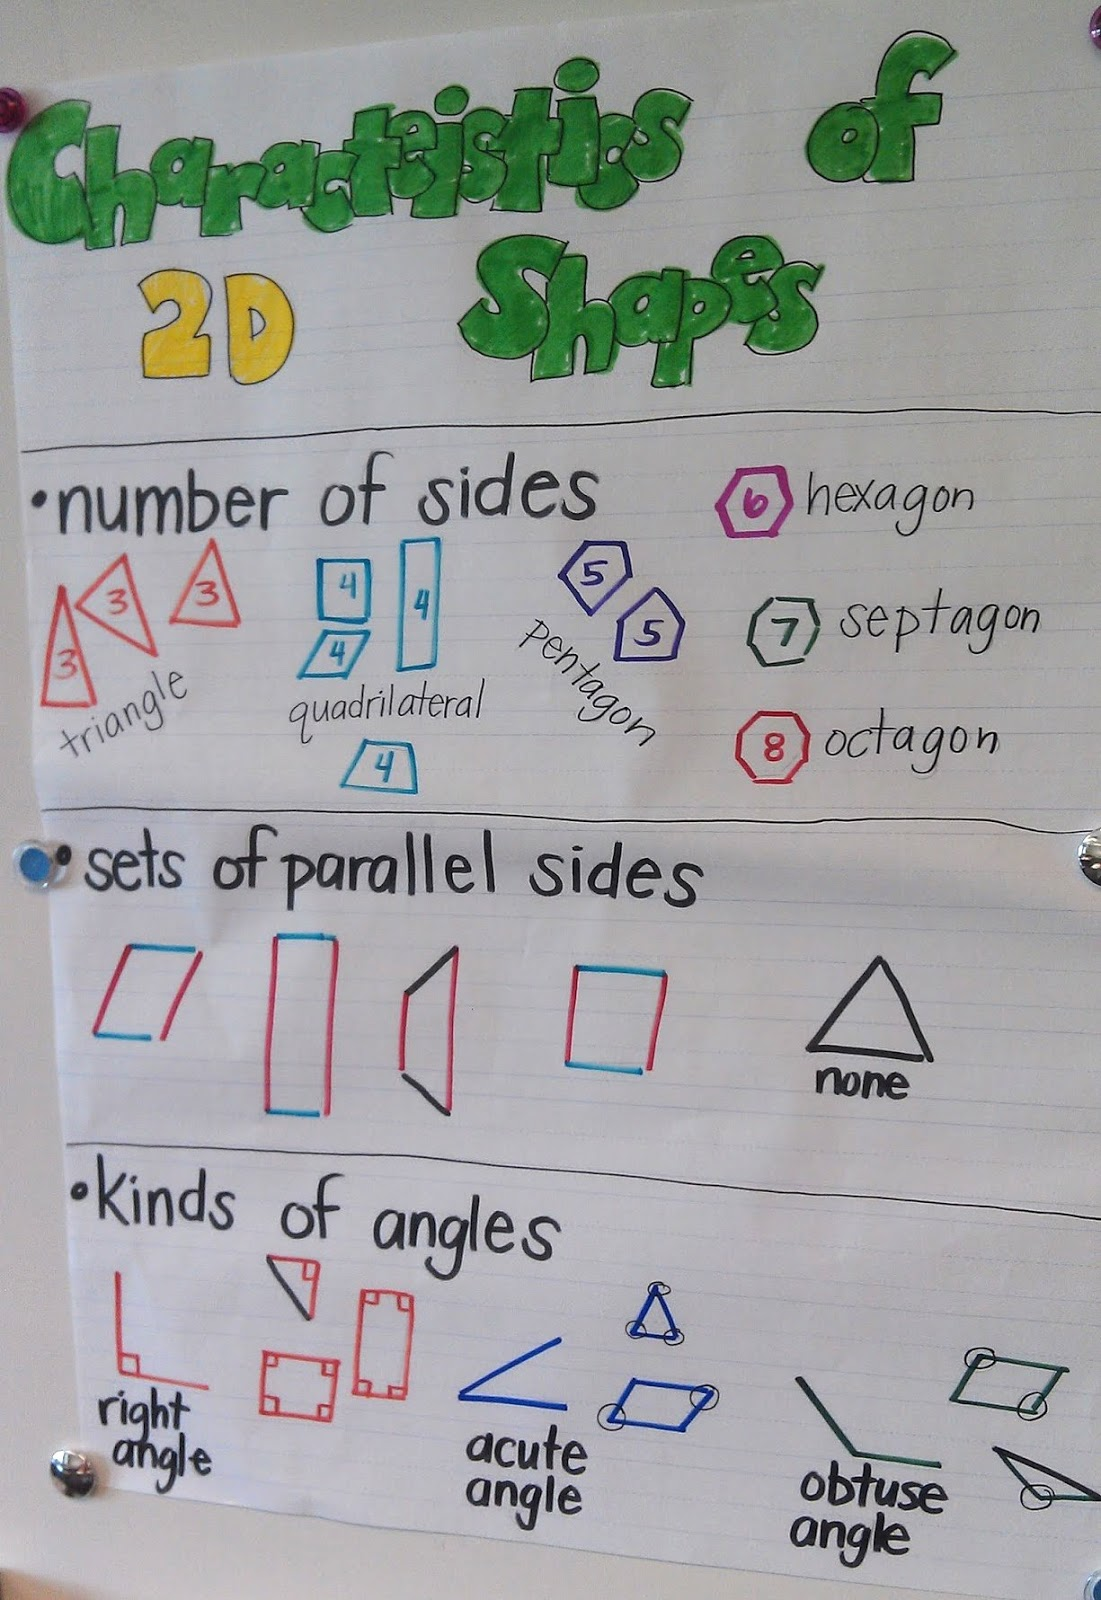 2d Geometric Shapes Chart Mrs Braun 39s 2nd Grade Class